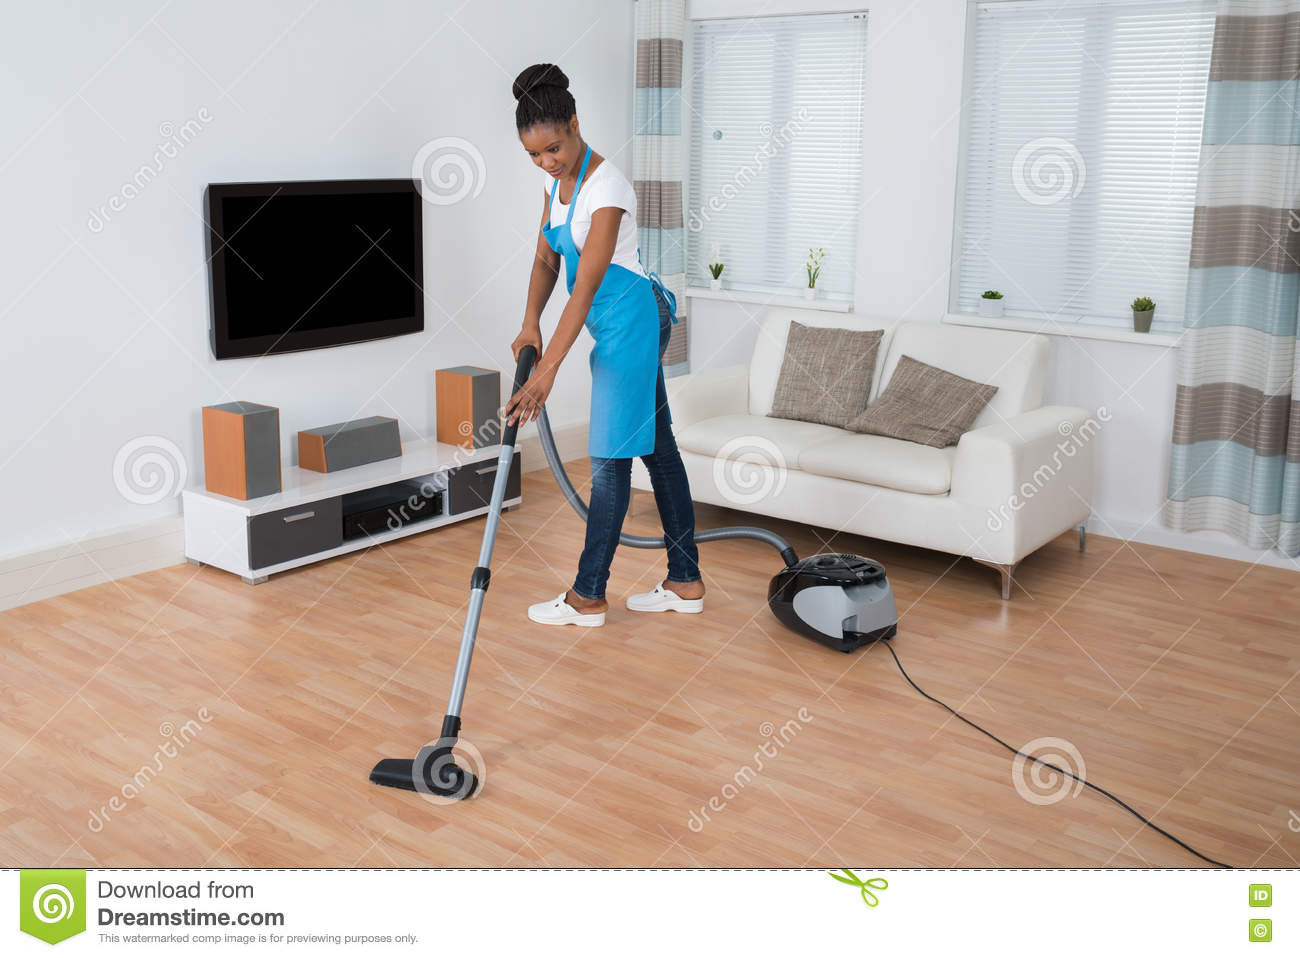 good vacuum cleaner for hardwood floors of woman cleaning floor with vacuum cleaner stock image image of throughout woman cleaning floor with vacuum cleaner